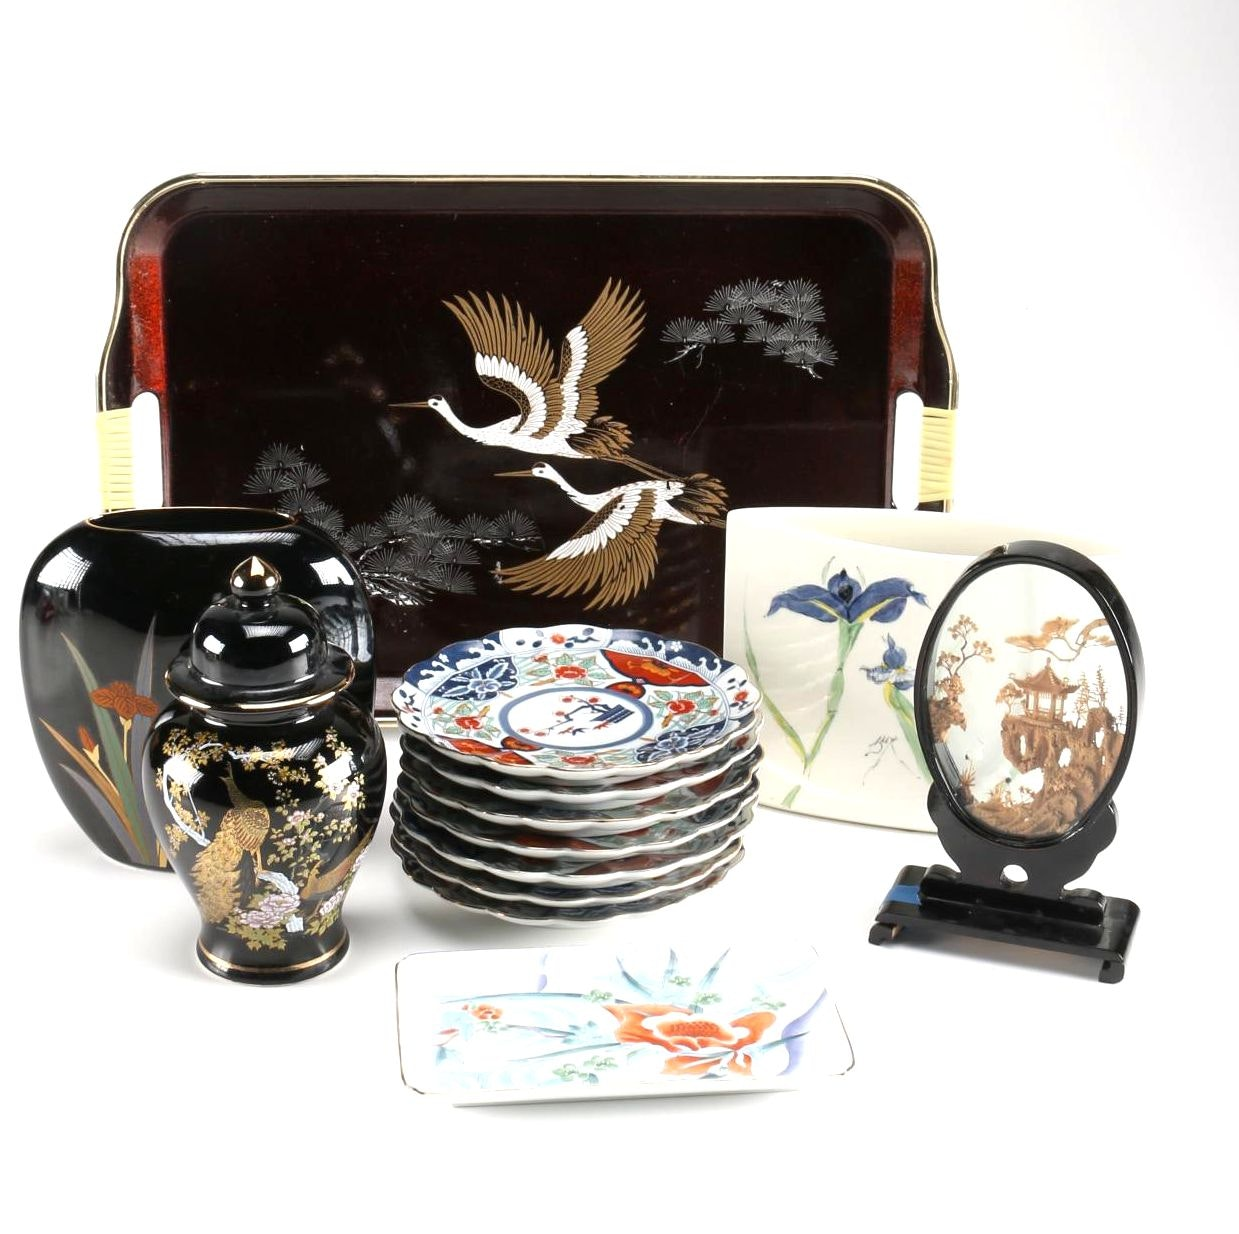 Japanese Tableware and Décor